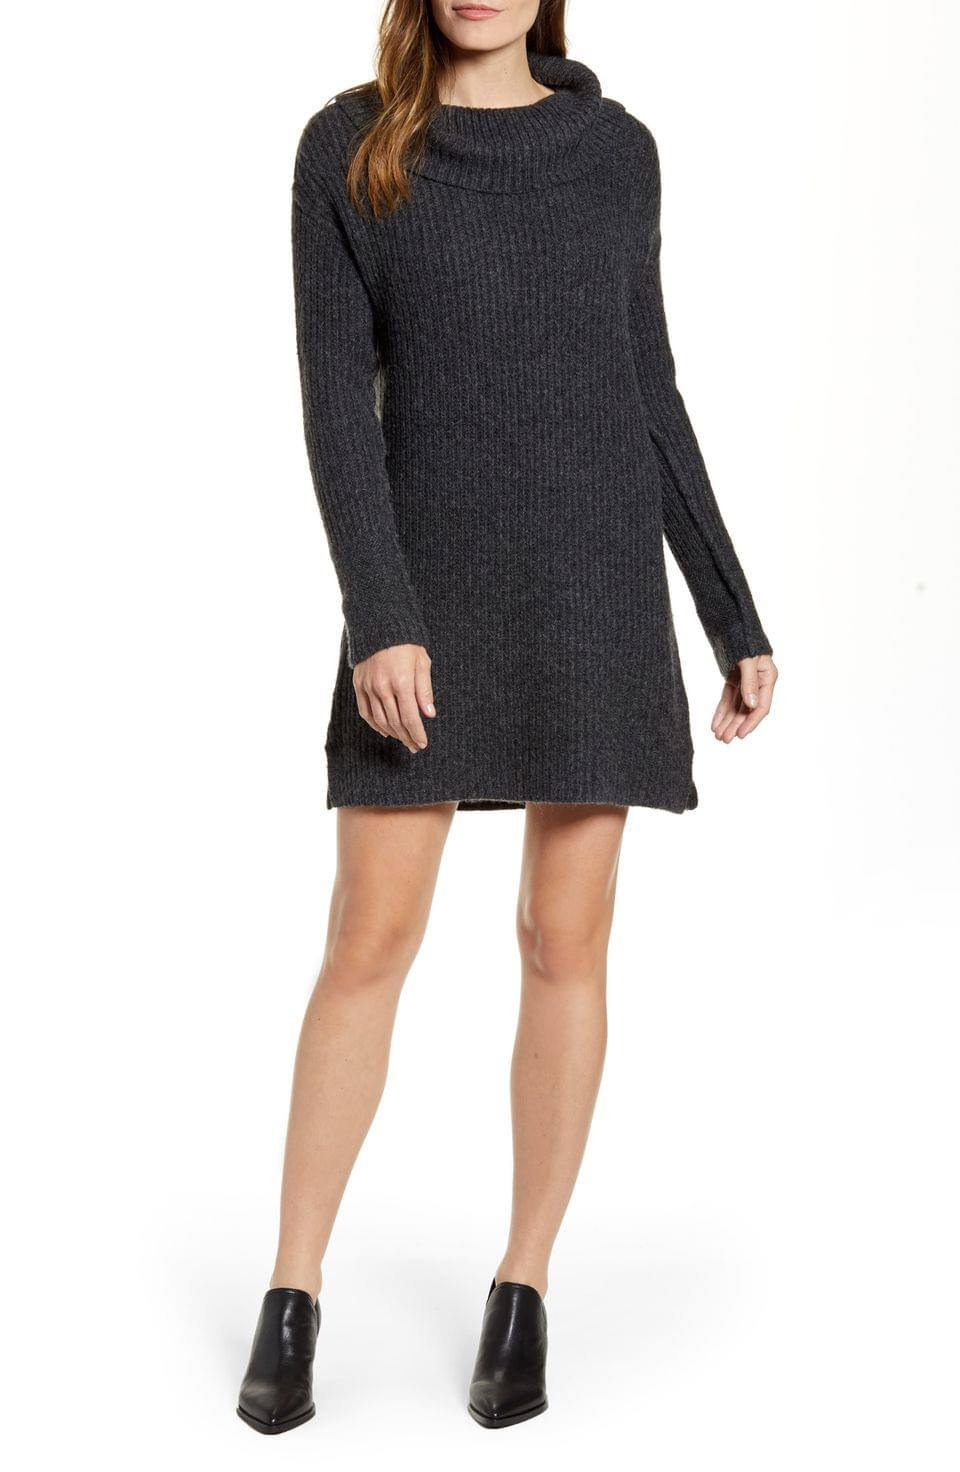 Women's Calson Cozy Links Long Sleeve Sweater Dress